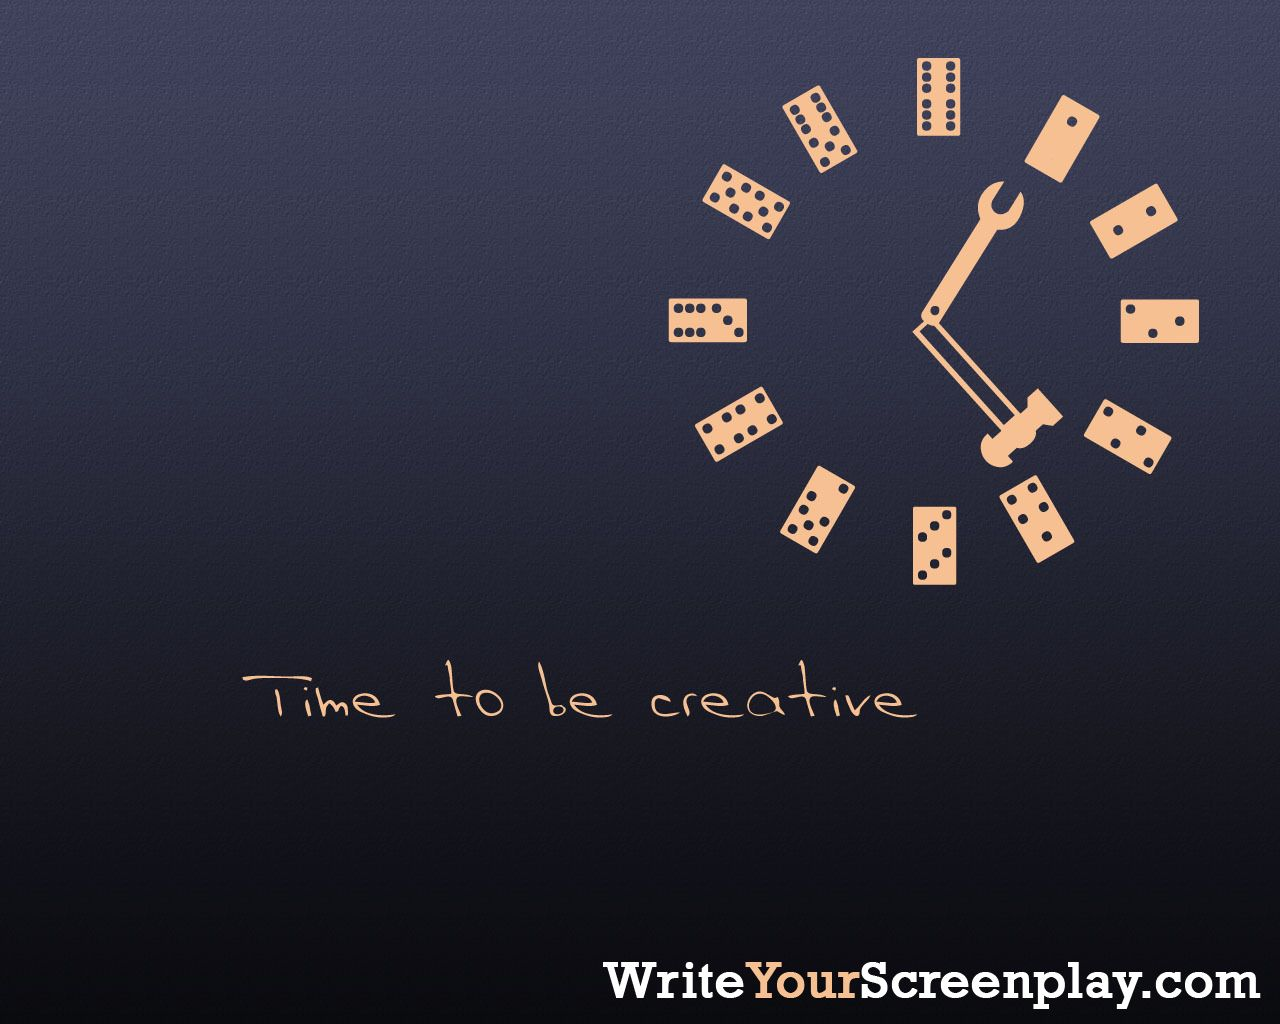 Screenwriting Writing Creativity